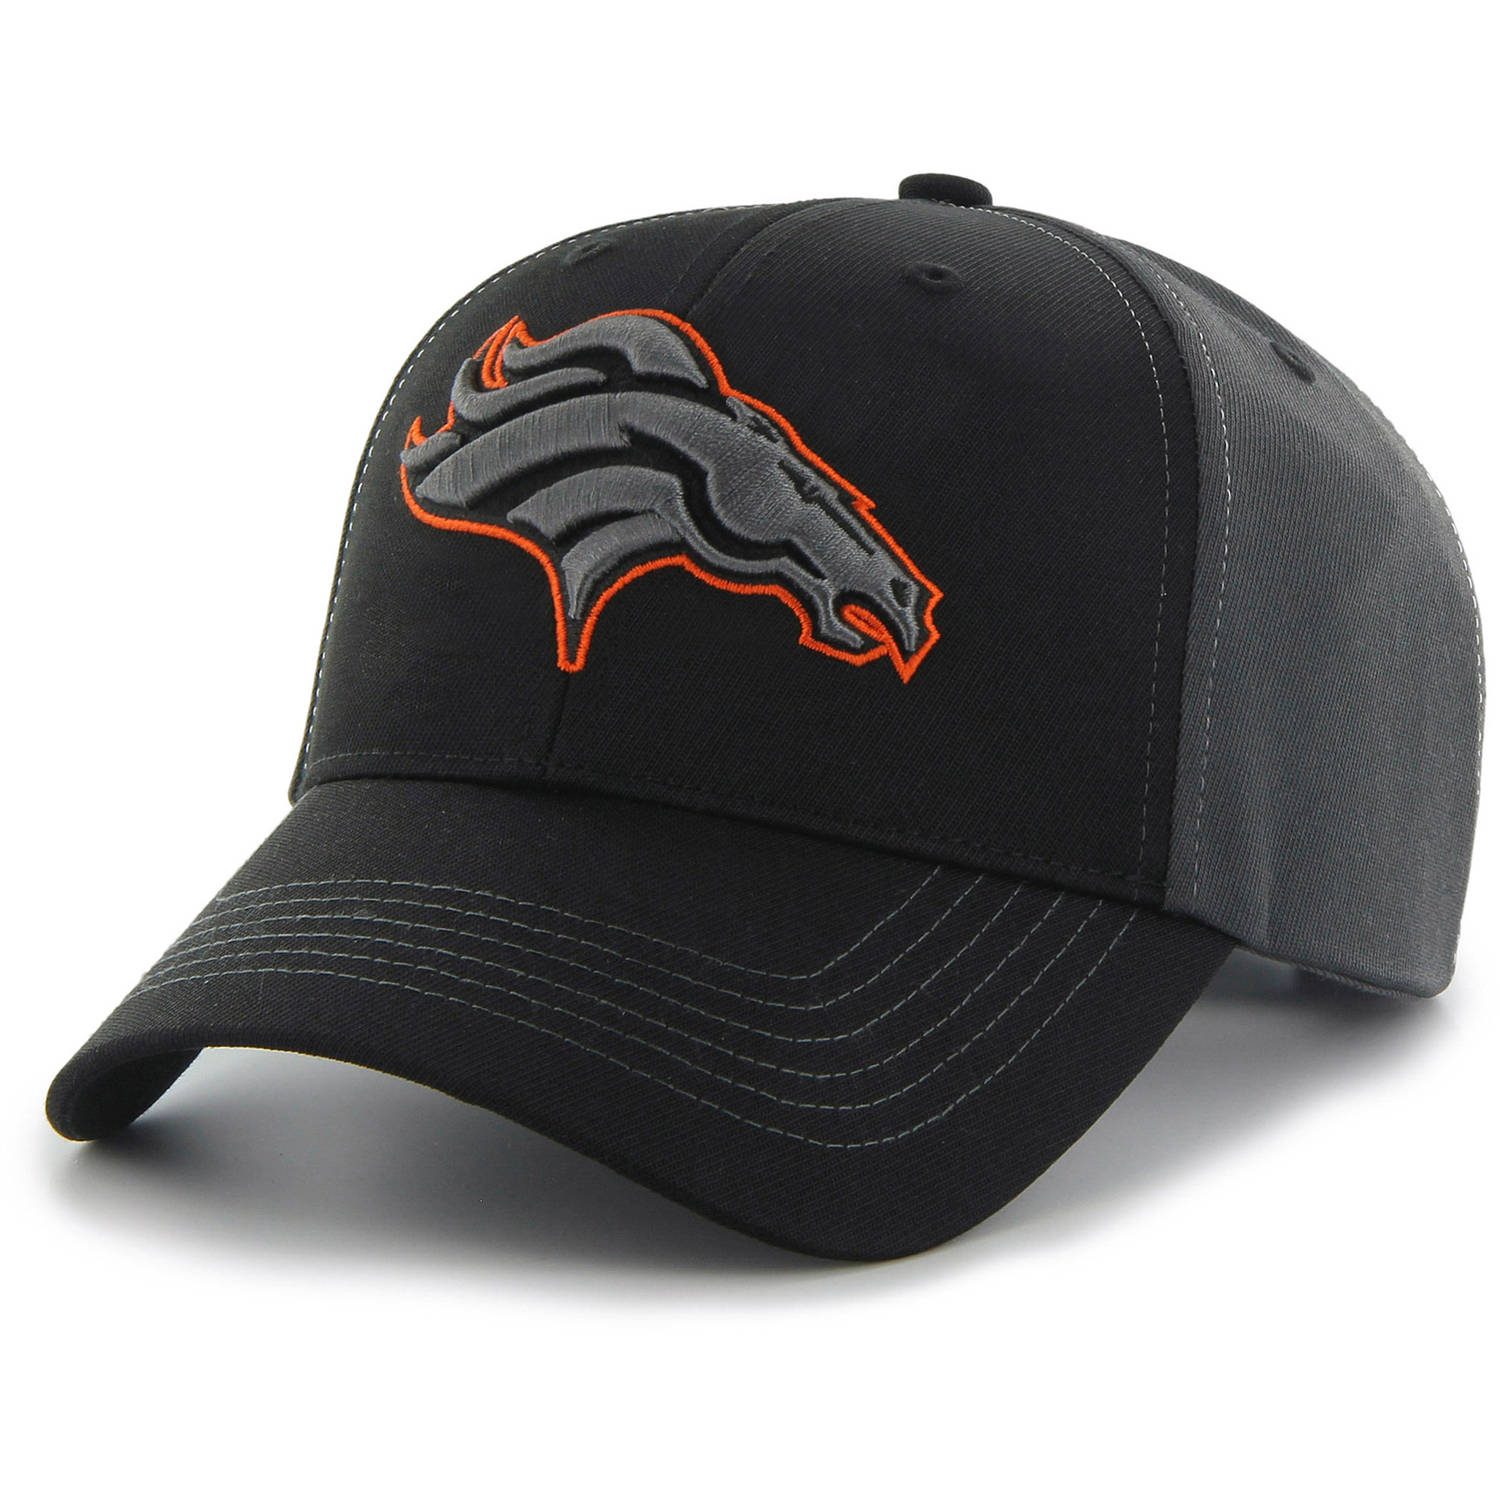 NFL Denver Broncos Blackball Cap / Hat by Fan Favorite